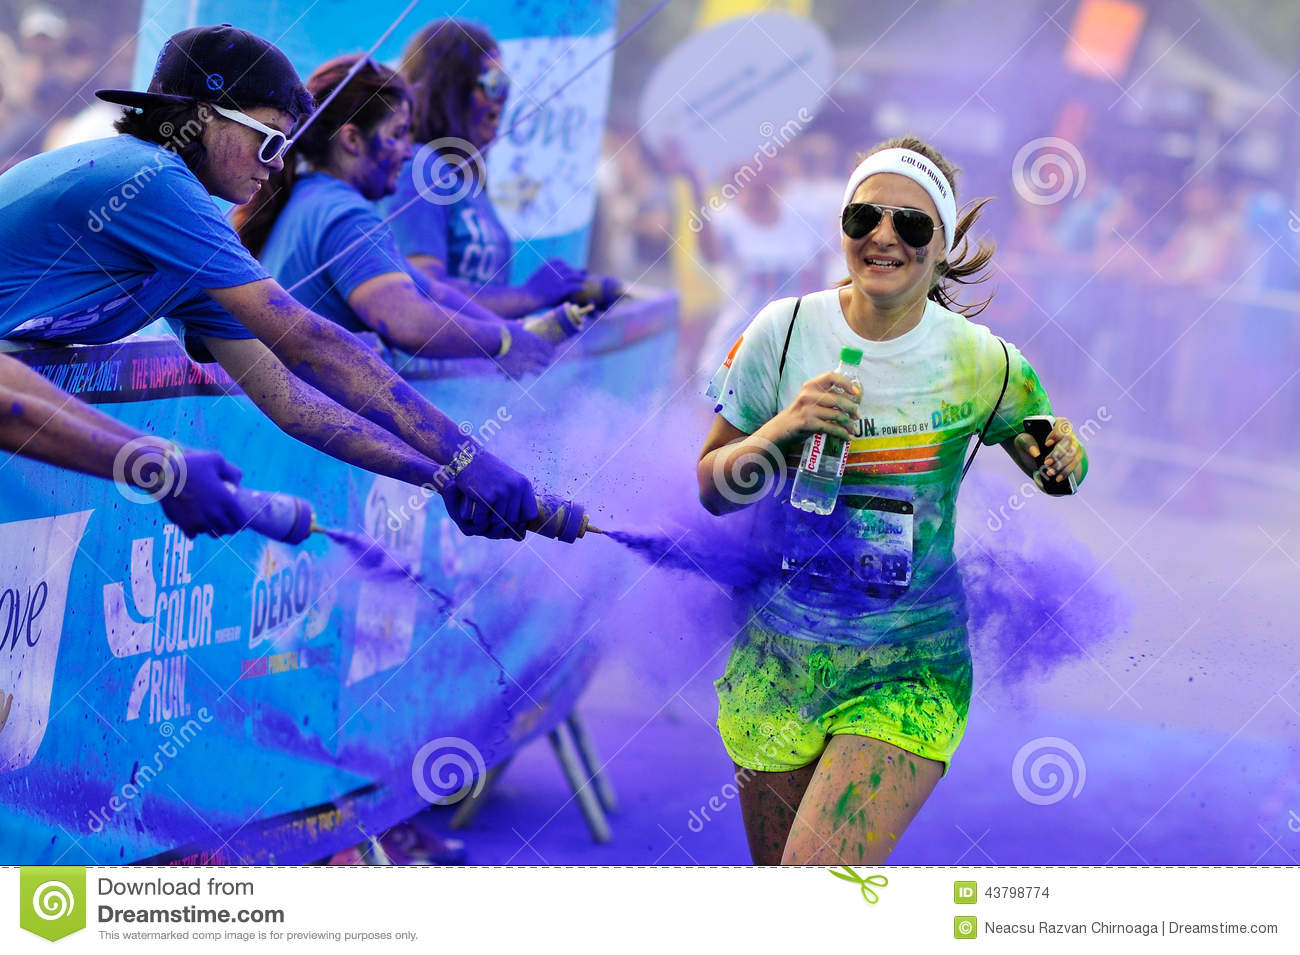 - JULY 26: Crowds of unidentified people at The Color Run on July ...